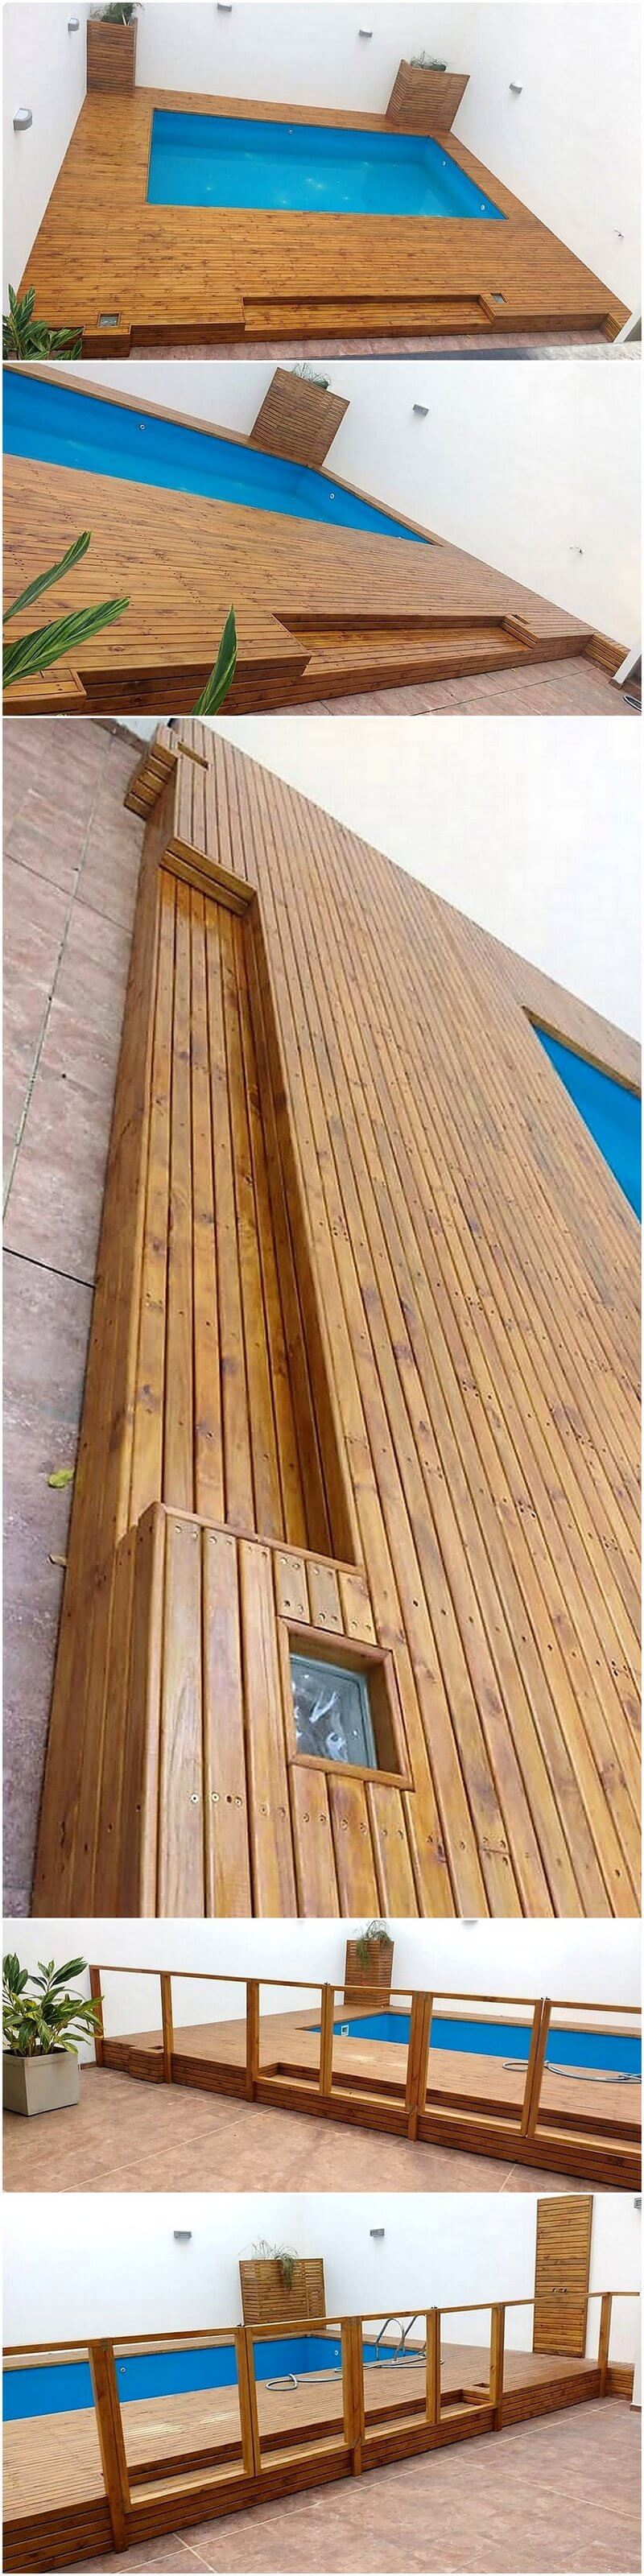 wood pallet pool plan